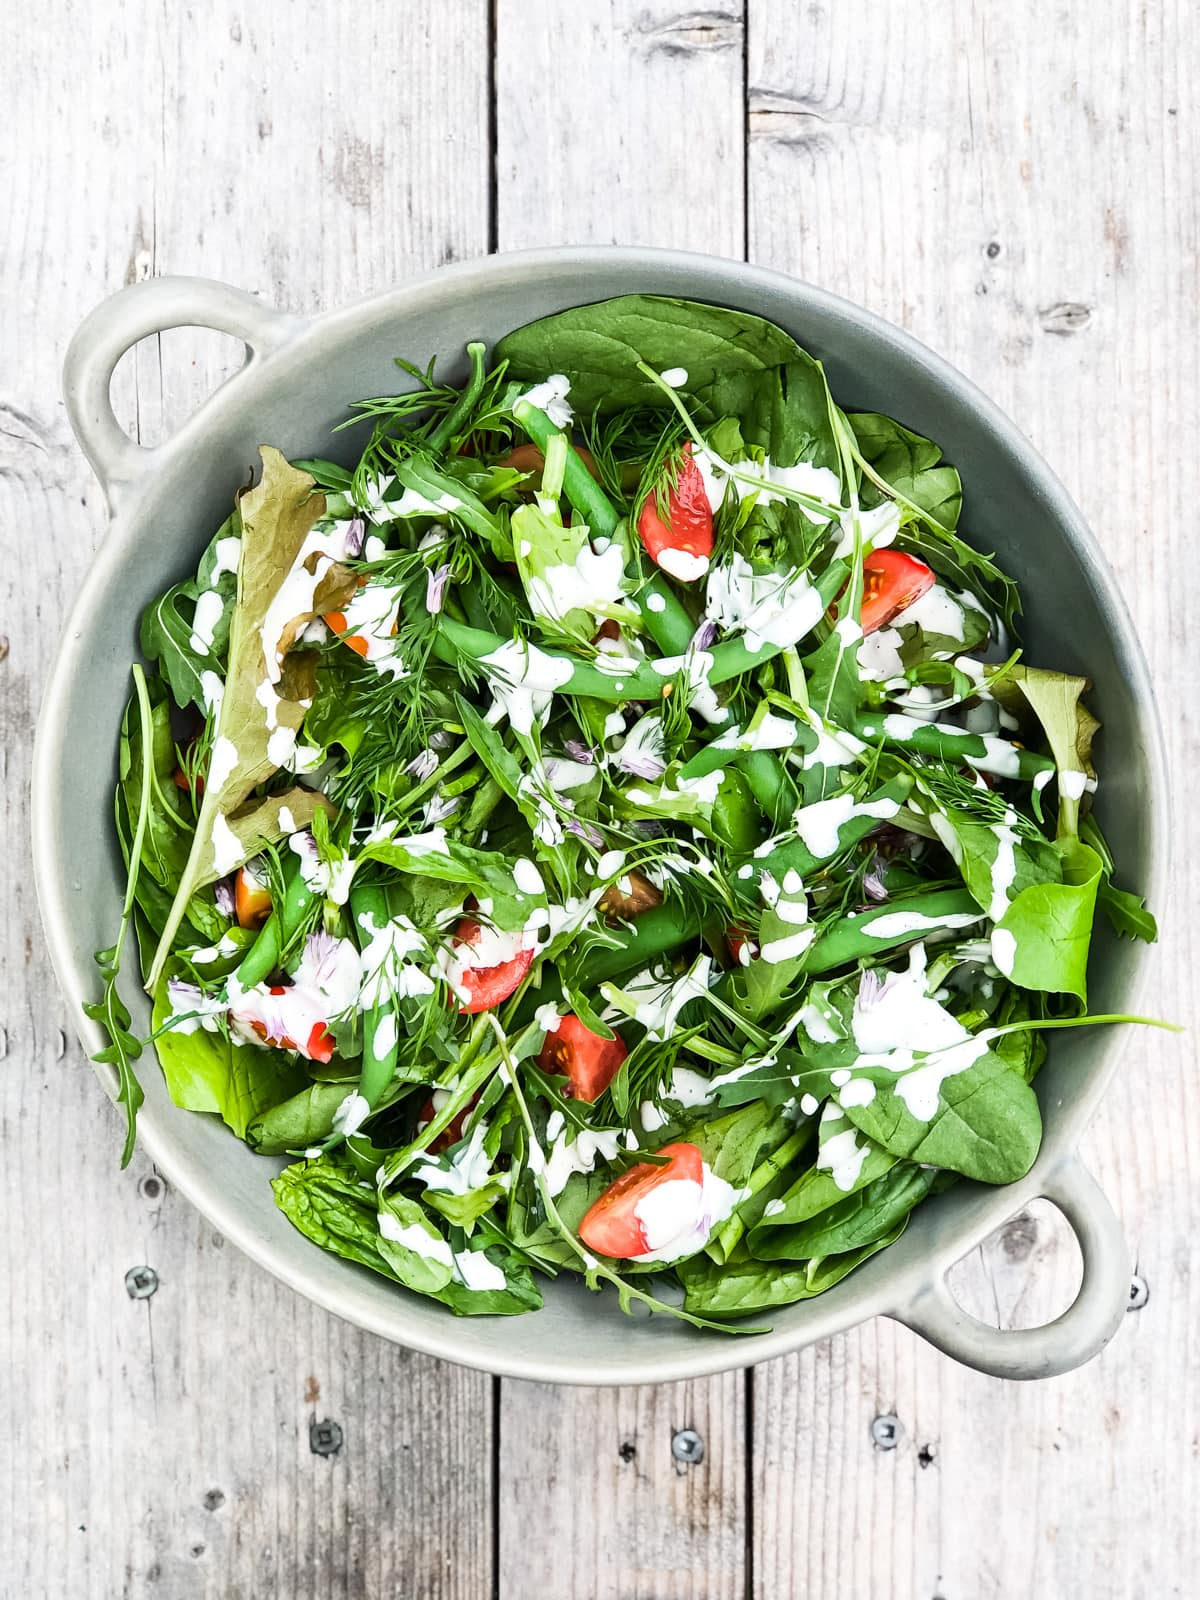 a top down view of a Simple Green Salad loaded with fresh greens, green beans, herbs and sliced tomatoes, then drizzled with a white dressing